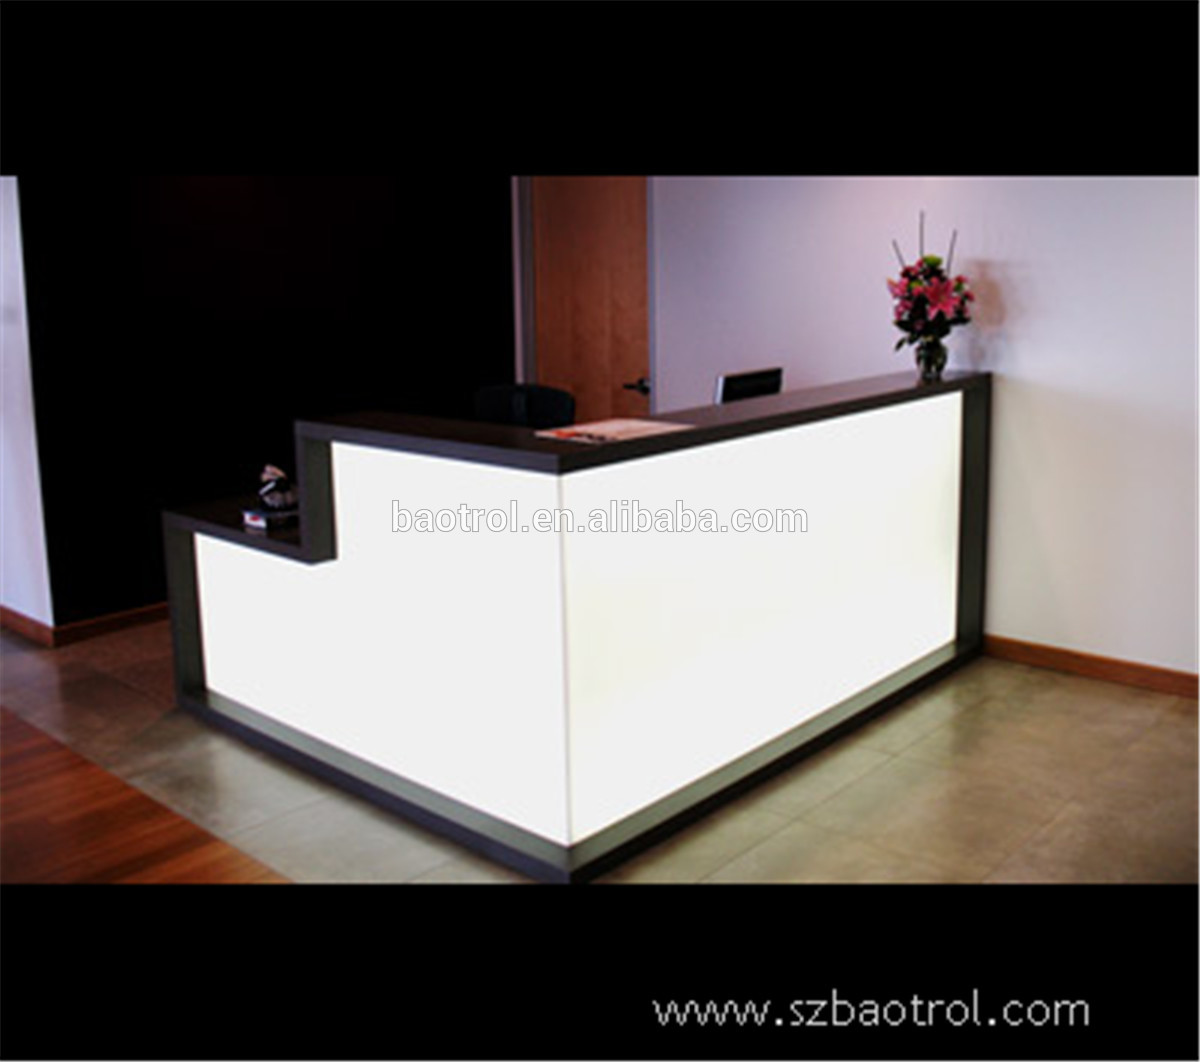 shelve salon reception toronto desk display with product furniture